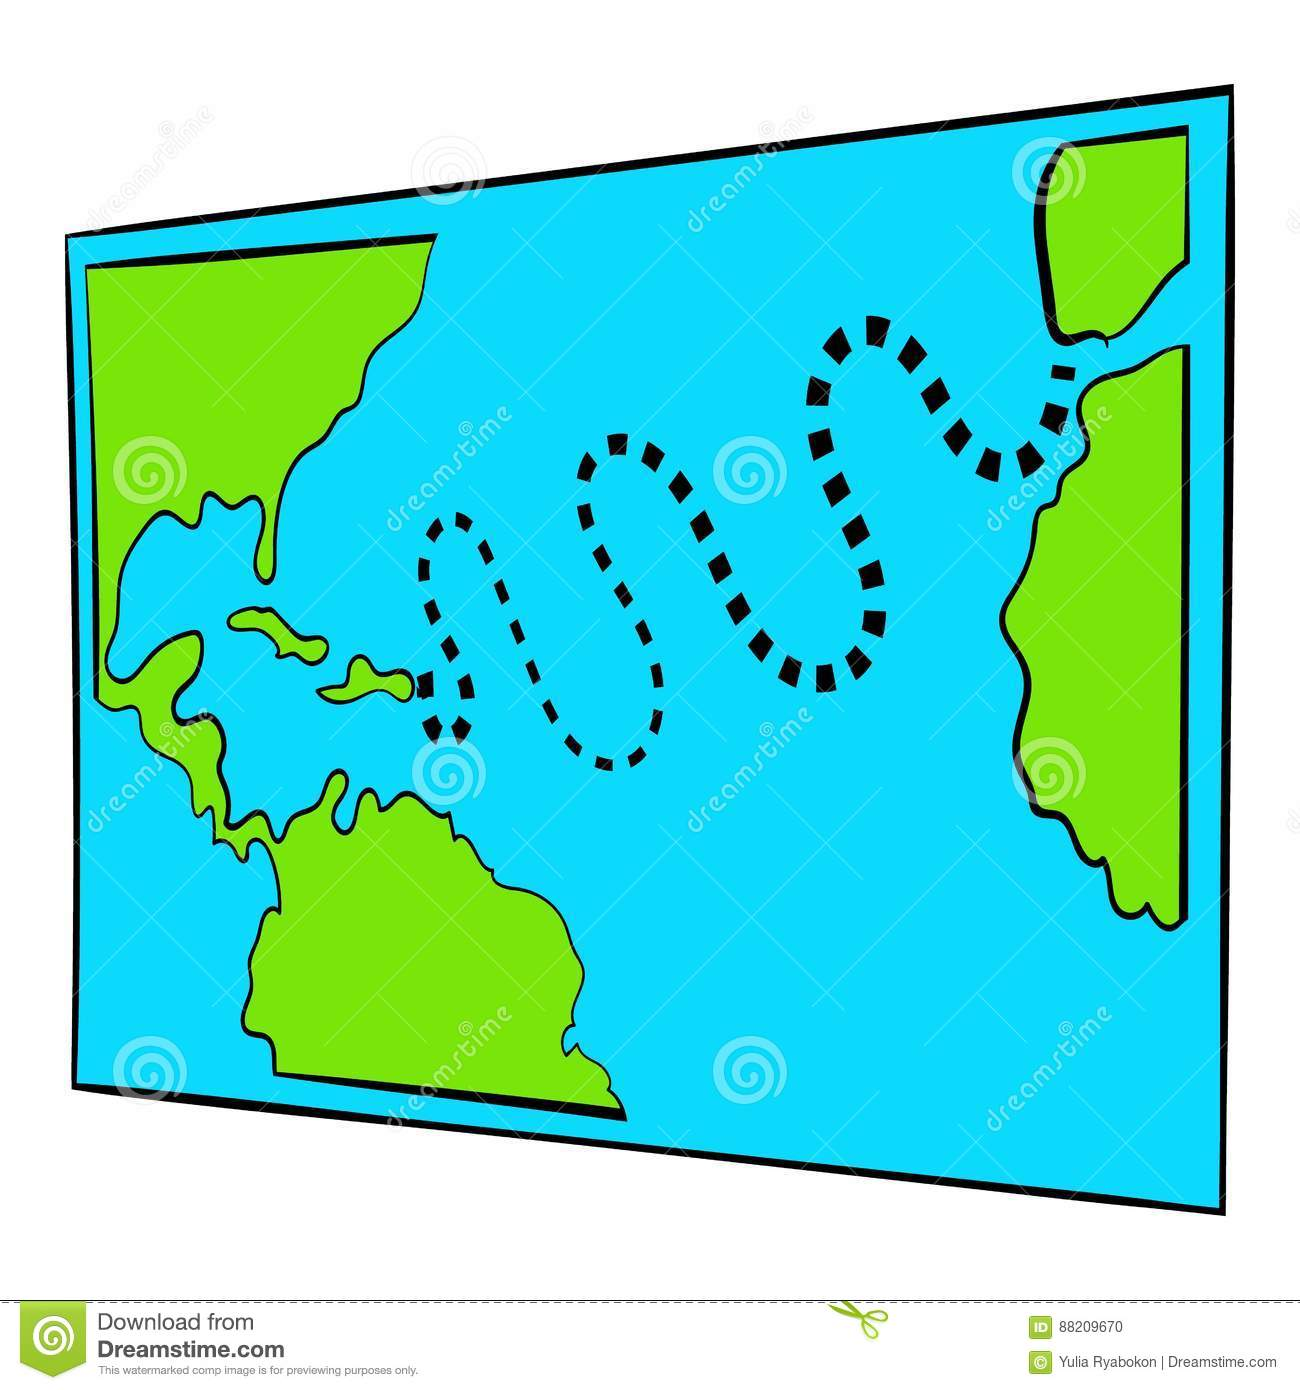 Christopher Columbus First Voyage Map Icon Stock Vector